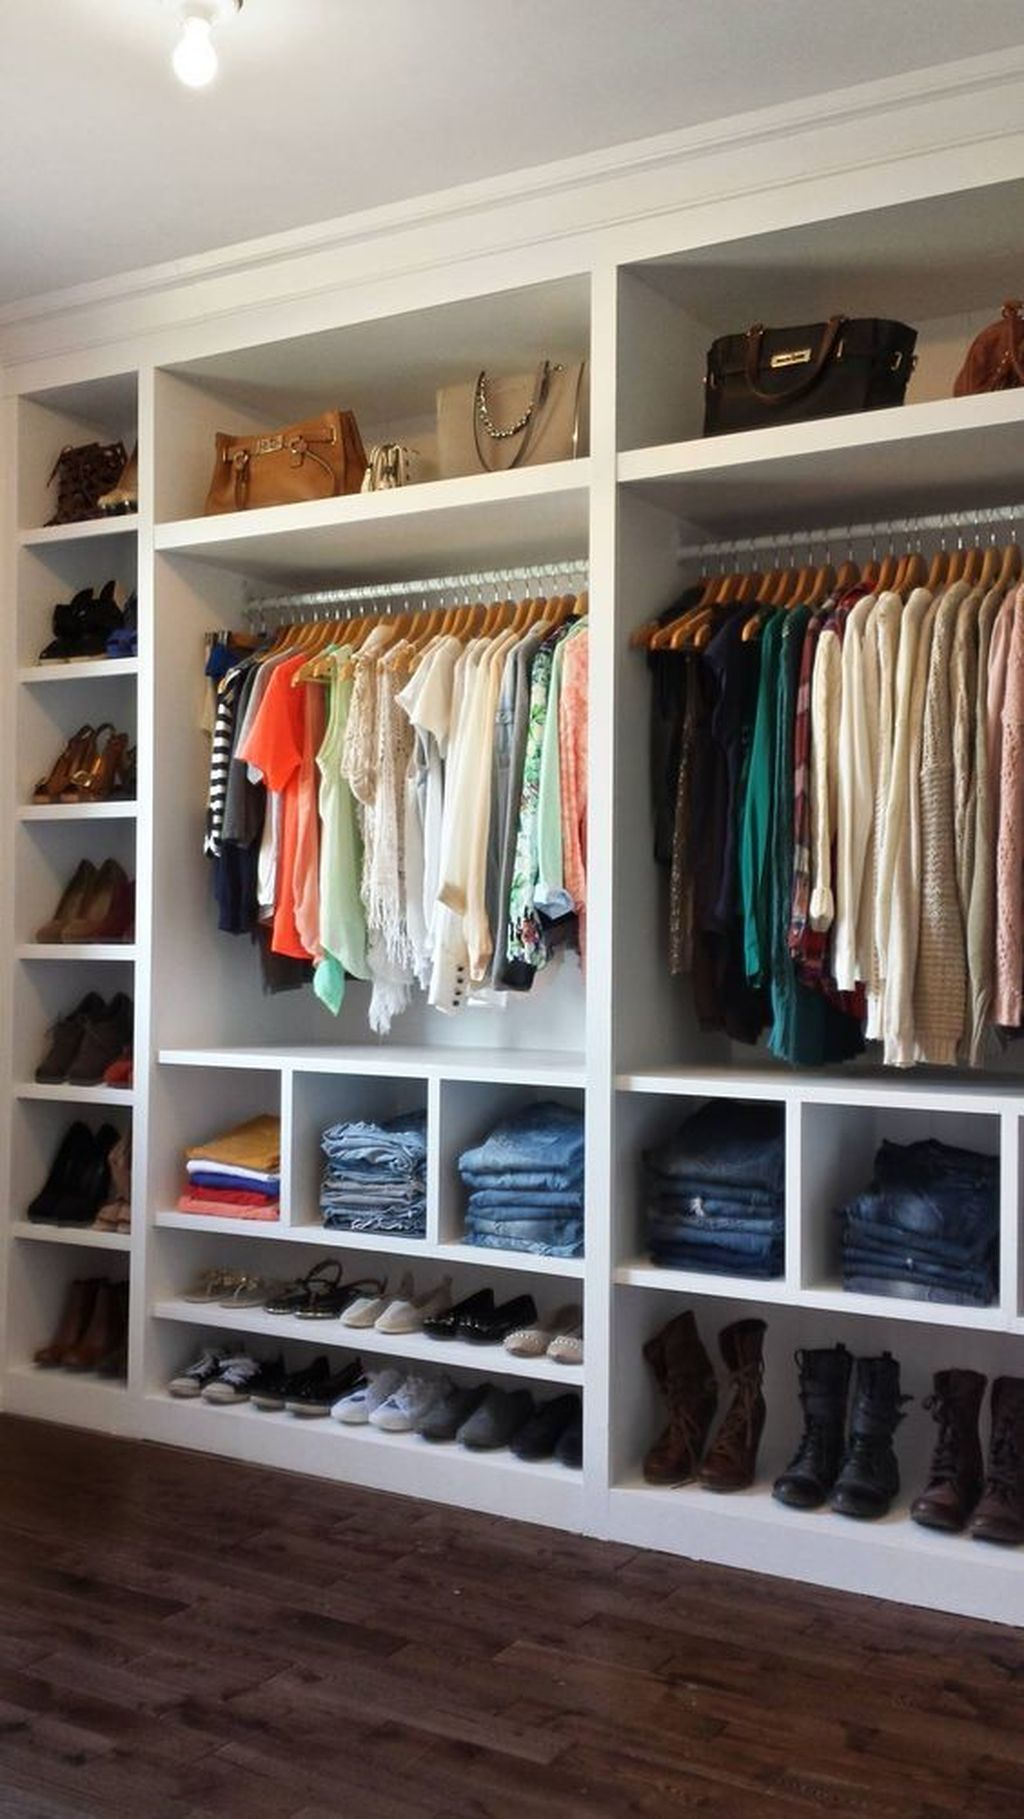 Splendid Wardrobe Design Ideas That You Can Try Current 23